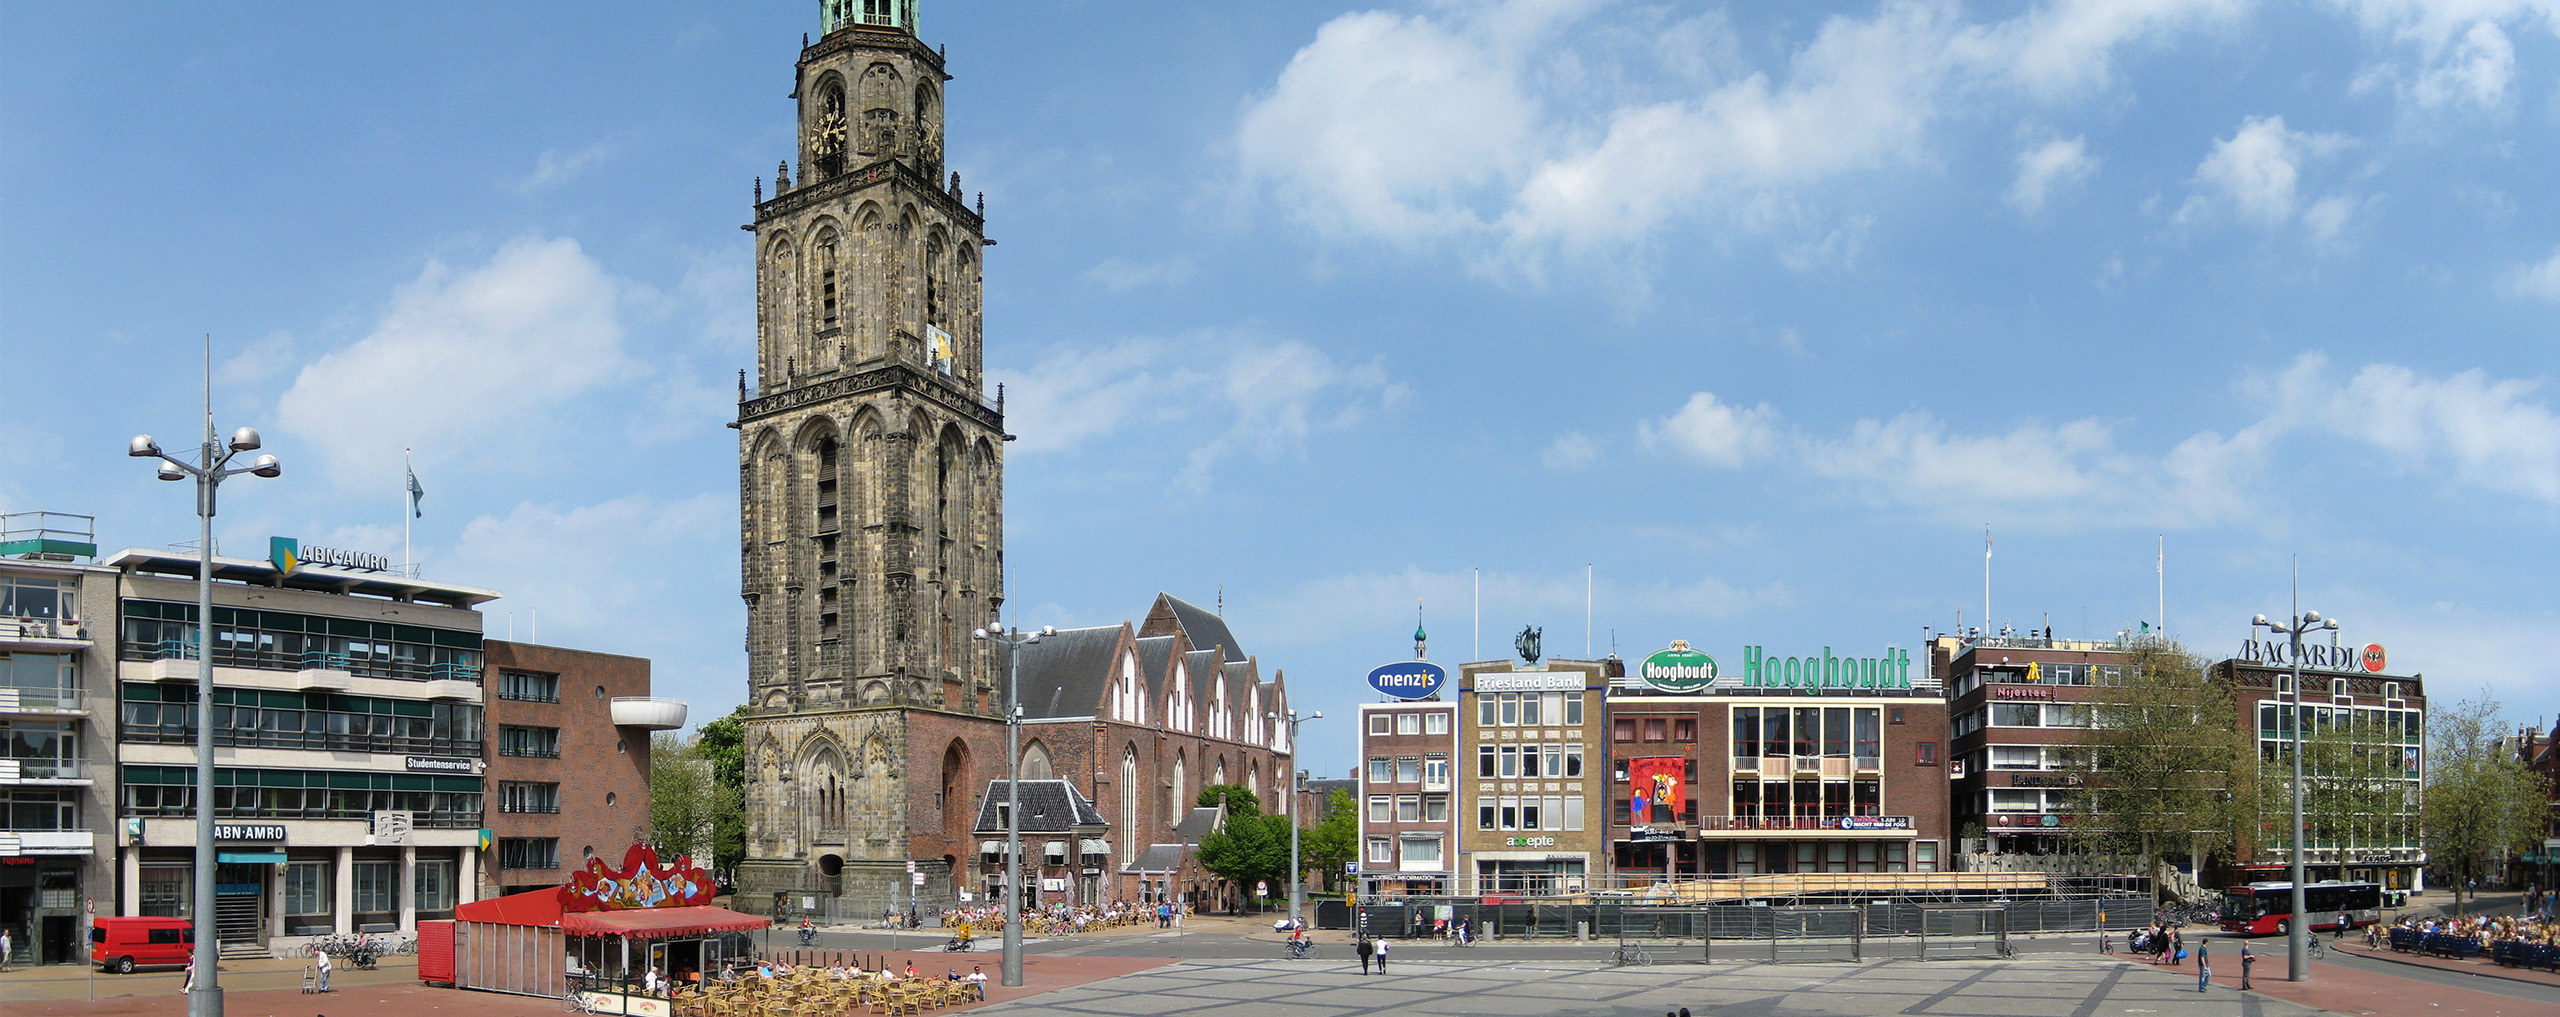 Marketingbureau, communicatiebureau en reclamebureau in Groningen